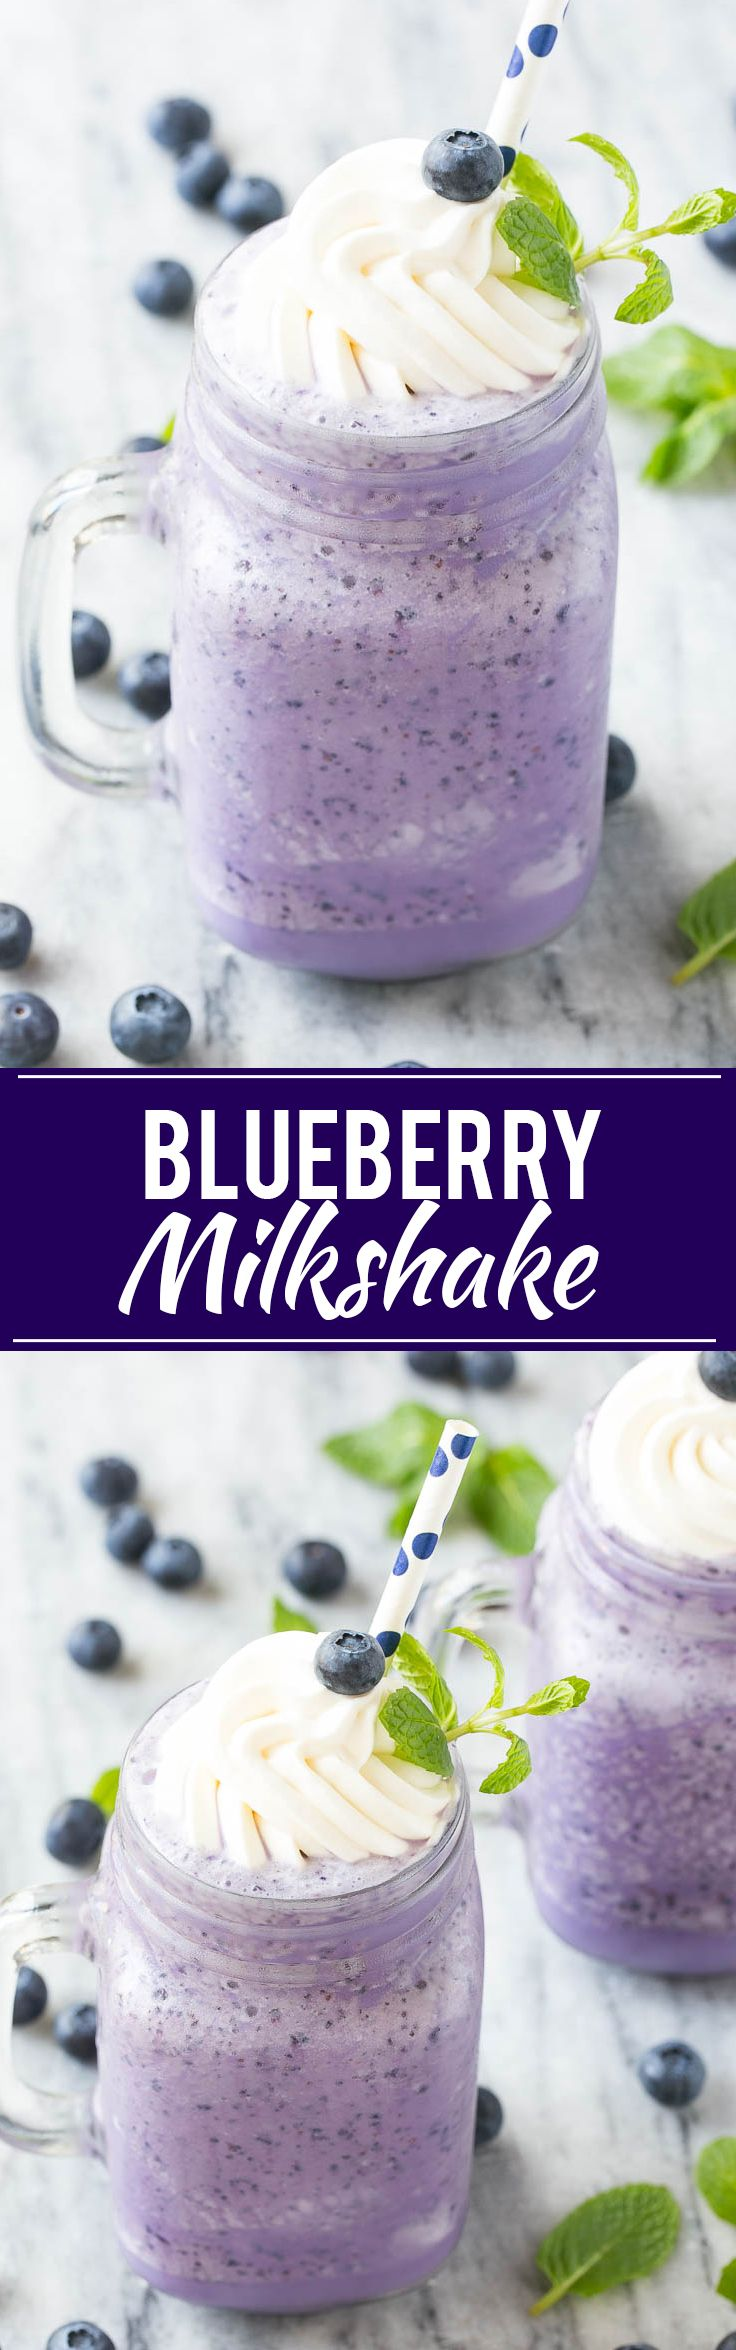 Blueberry Milkshake - A cool treat that's on the lighter side - this milkshake has 70% less calories than the original version!